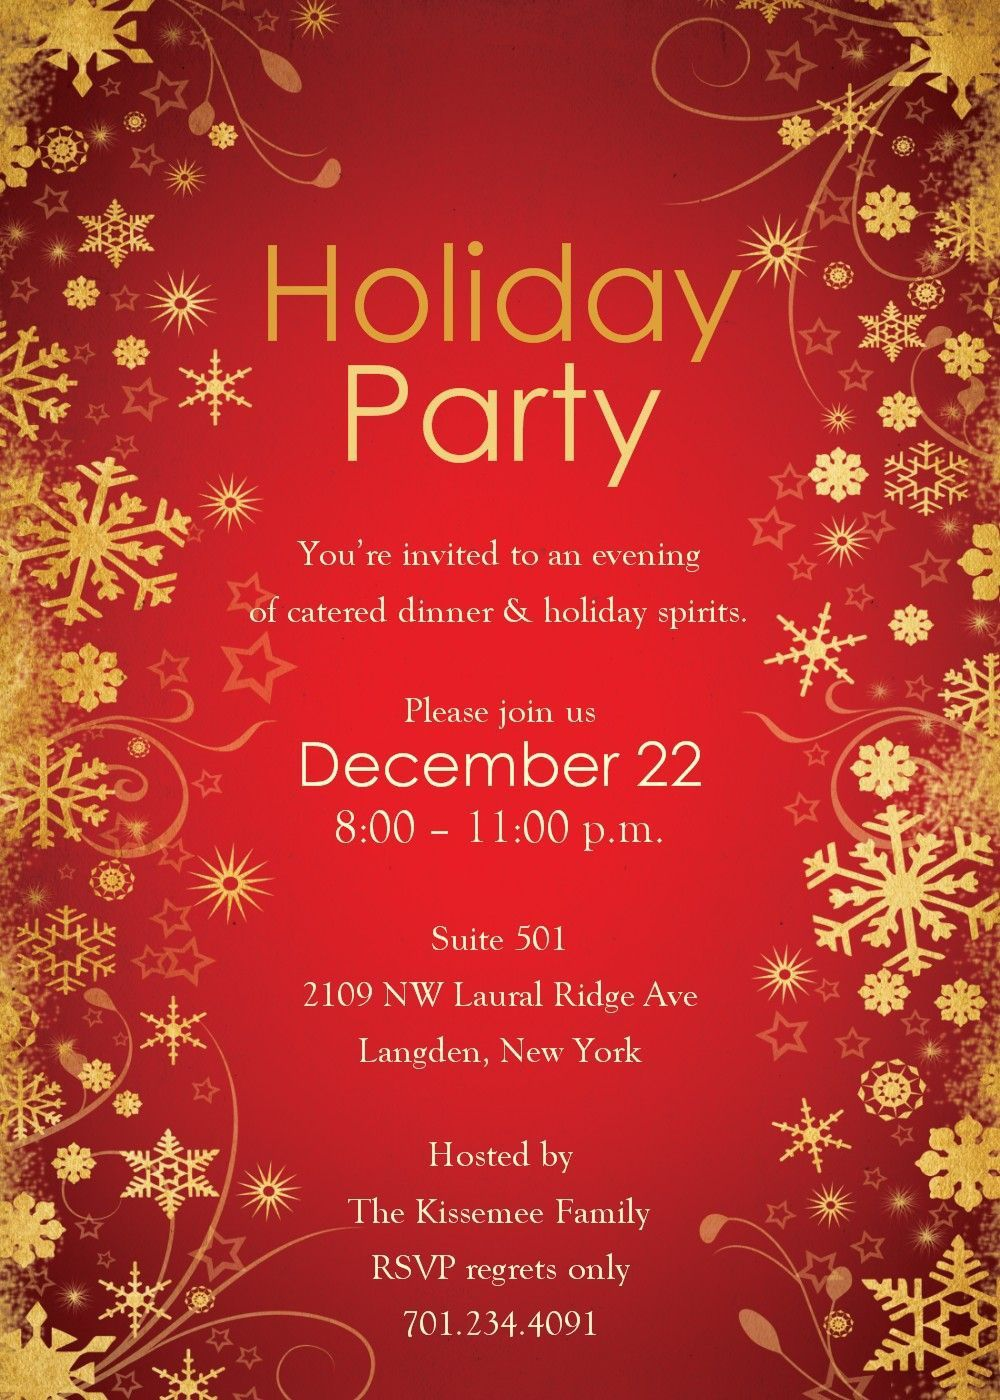 007 Excellent Free Holiday Invitation Template Idea  Online Party ChristmaFull